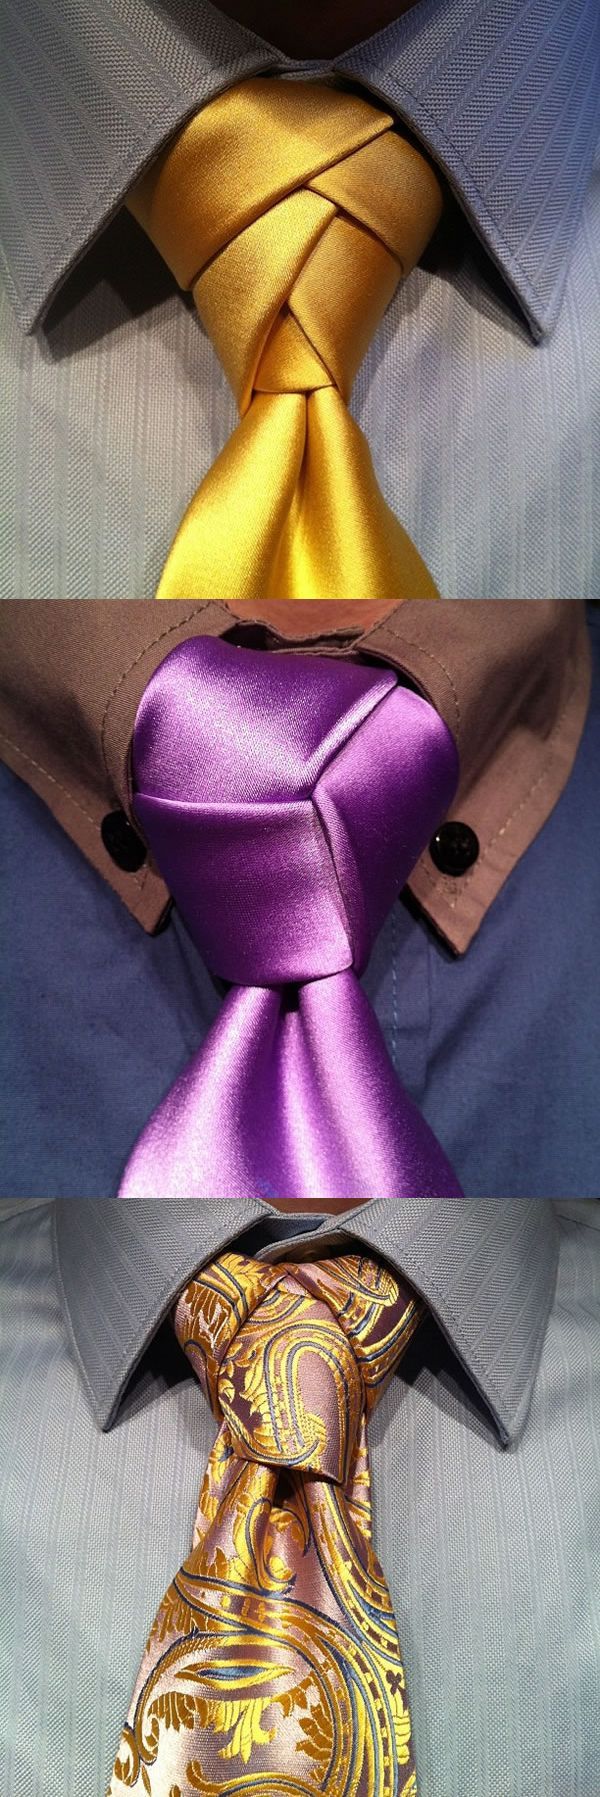 Exotic Necktie Knots — from top: Eldredge Knot, Cape Knot & Trinity Knot. For instructional videos on these & more, visit http://www.agreeordie.com